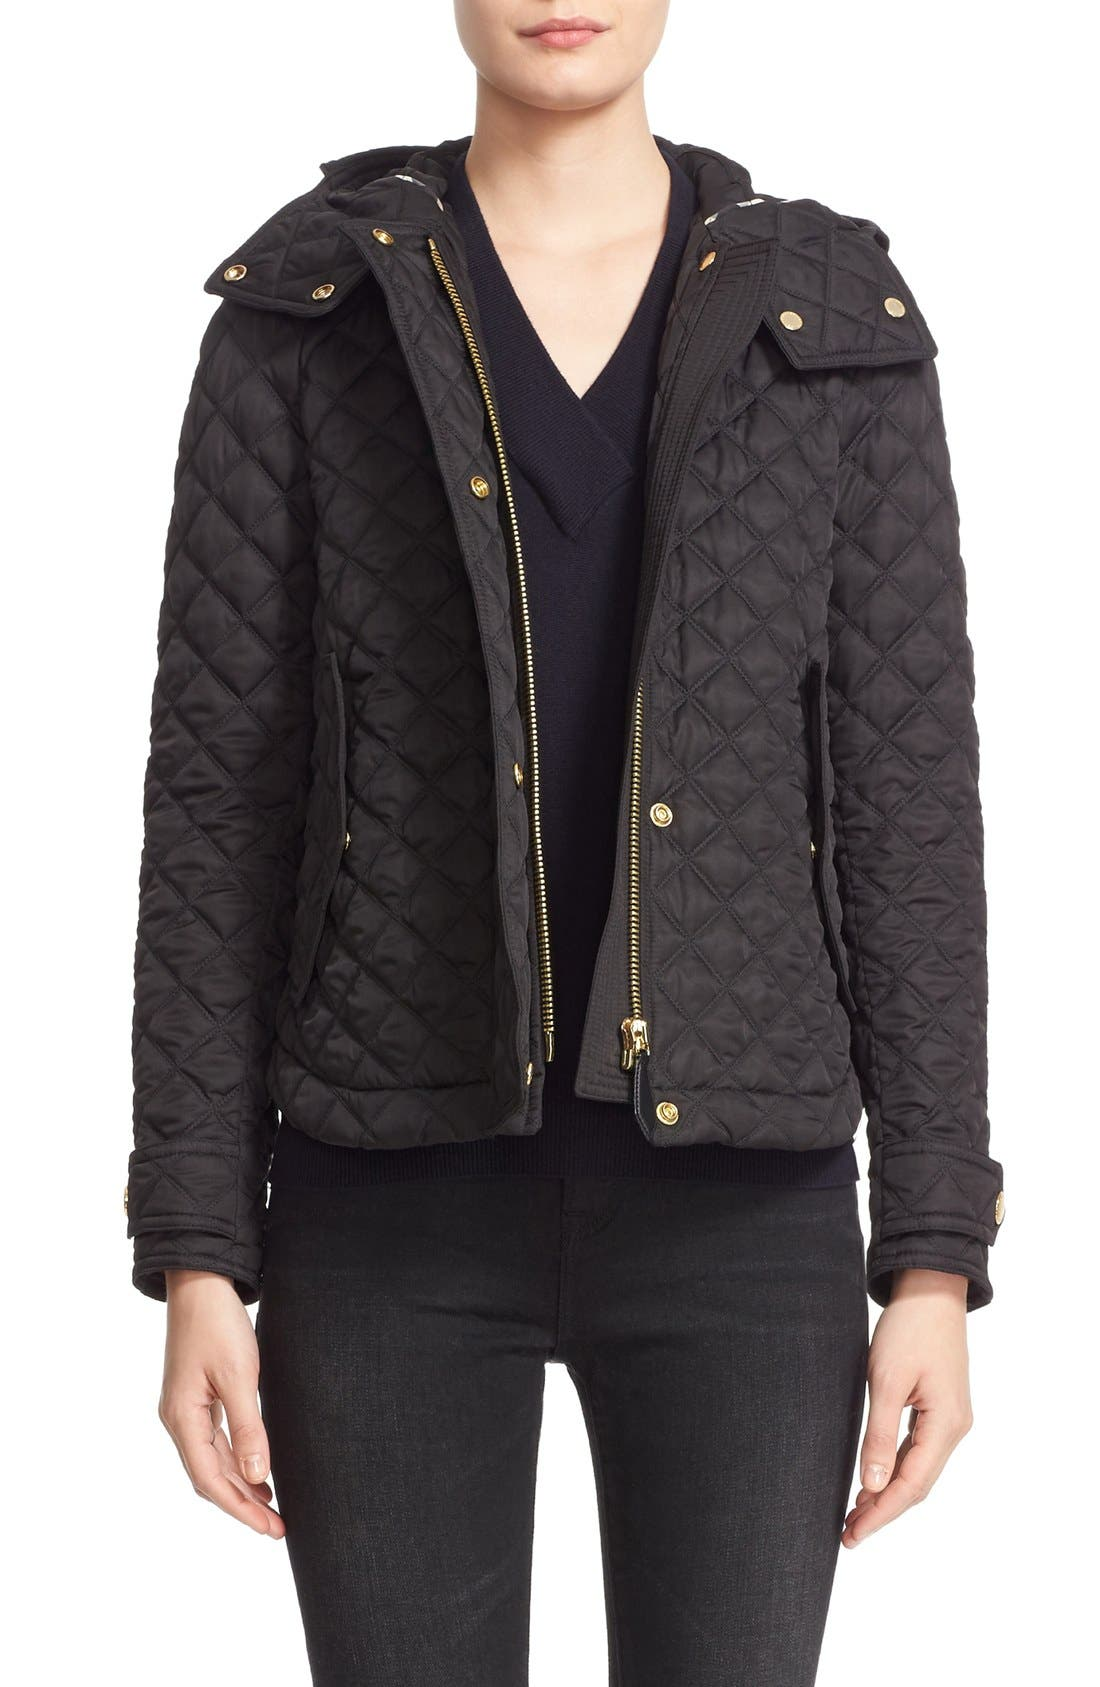 'Leightonbury' Quilted Hooded Jacket,                             Main thumbnail 1, color,                             001